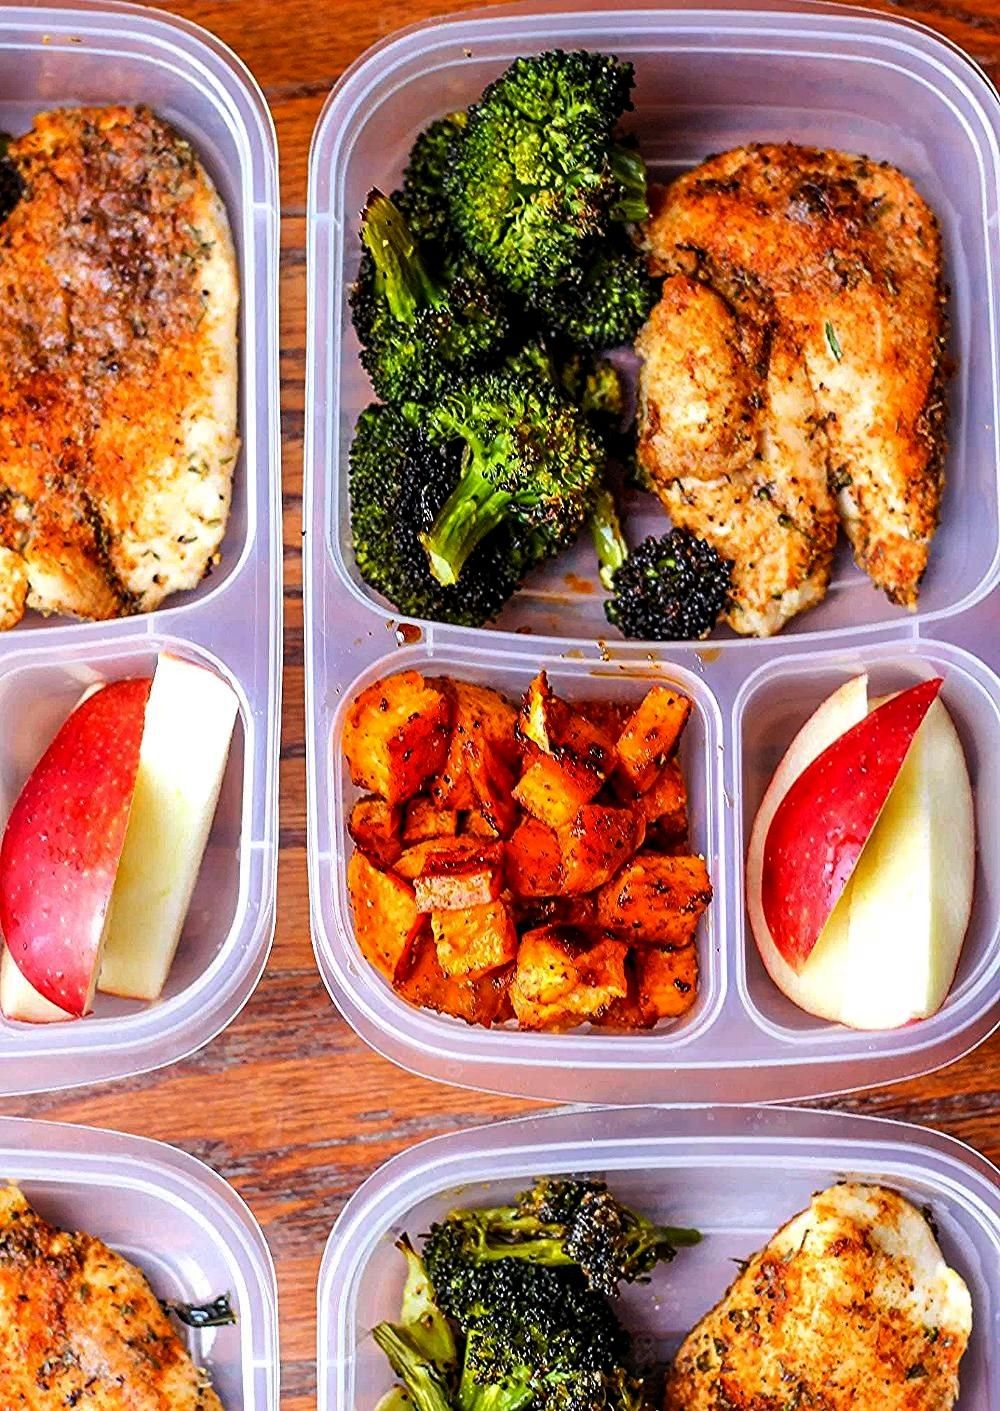 Prep Lunch Bowls with Spicy Chicken Roasted Lemon Broccoli and Caramelized Sweet PotatoesMeal Prep Lunch Bowls with Spicy Chicken Roasted Lemon Broccoli and Caramelized S...